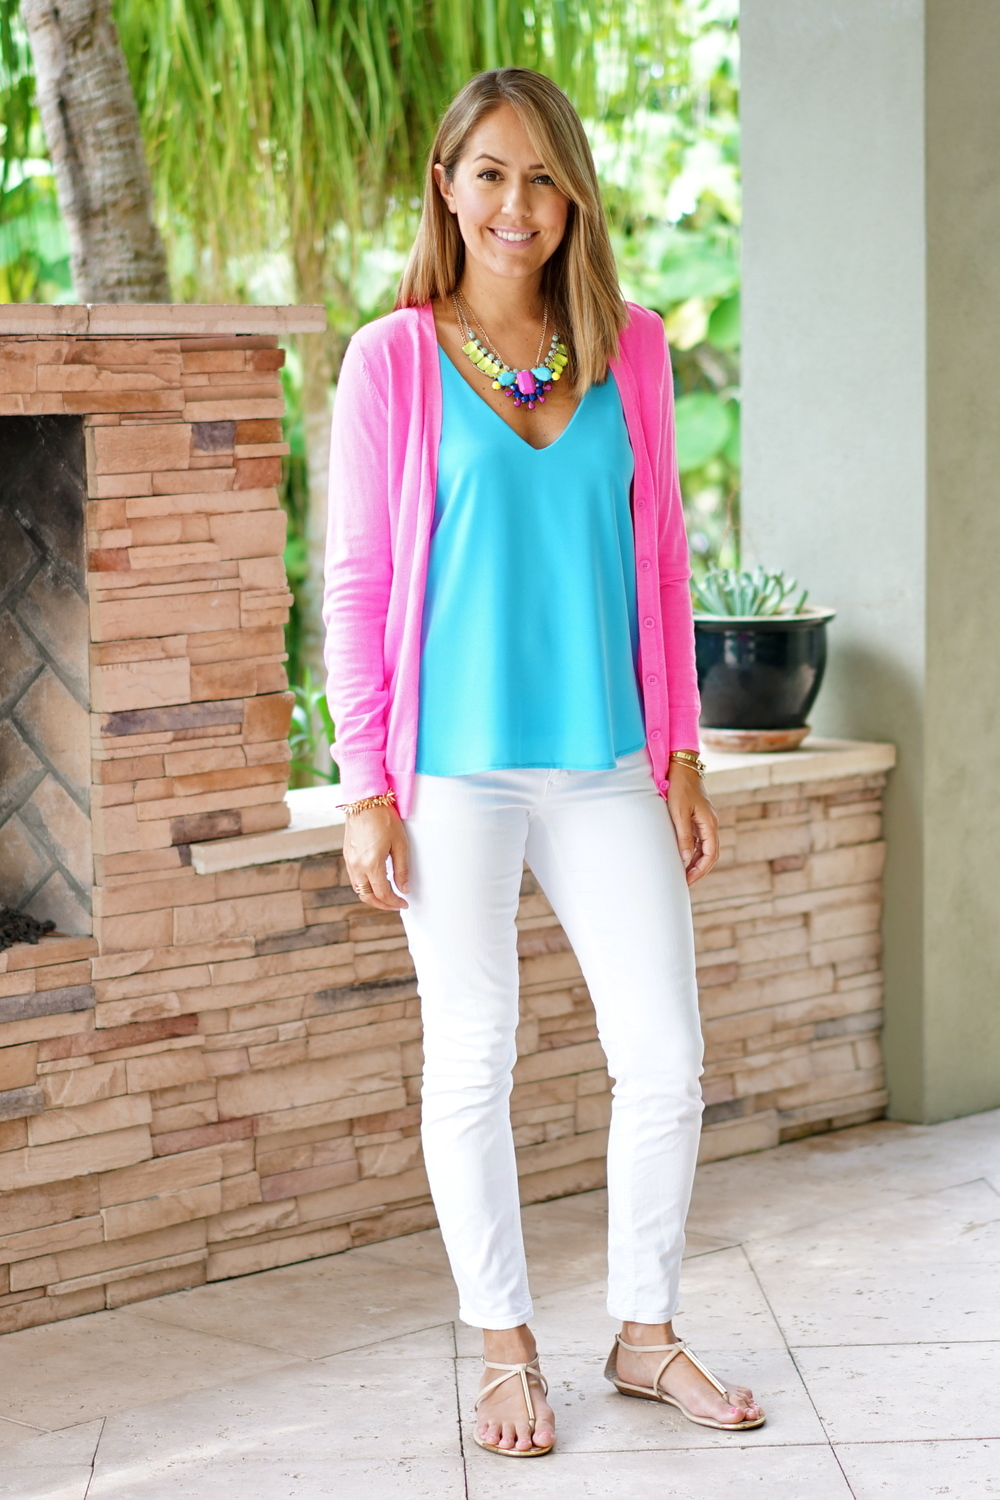 Neon pink cardigan, blue tank, statement necklace, white jeans